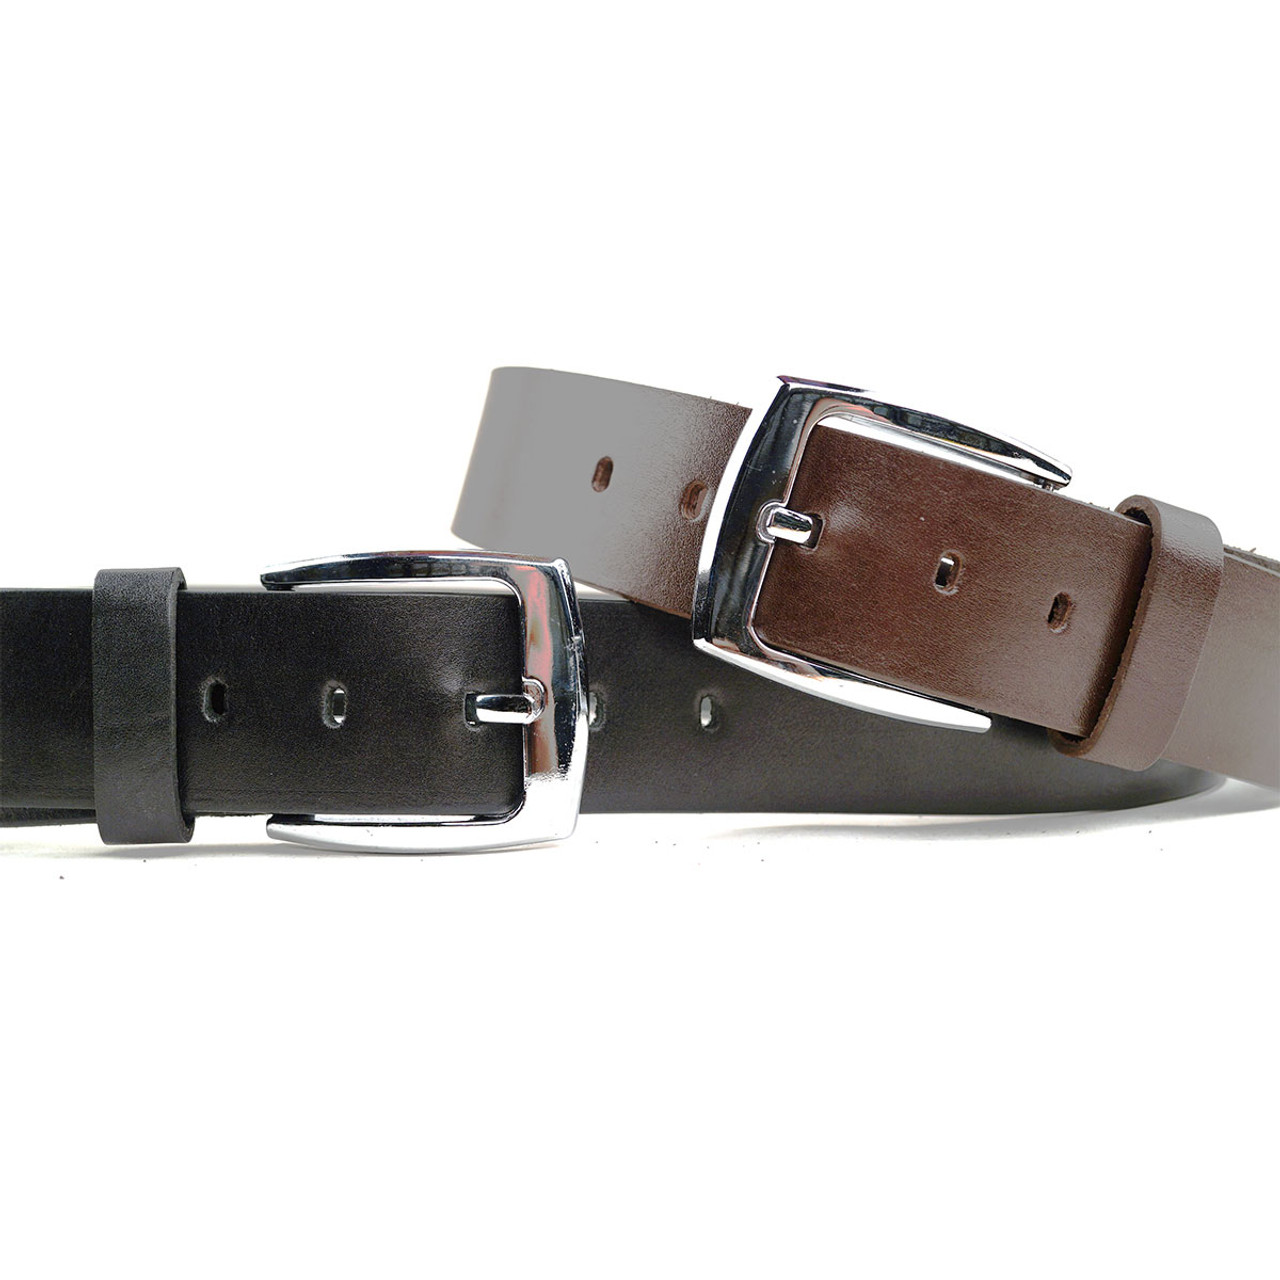 Glock Match-Grade Belt